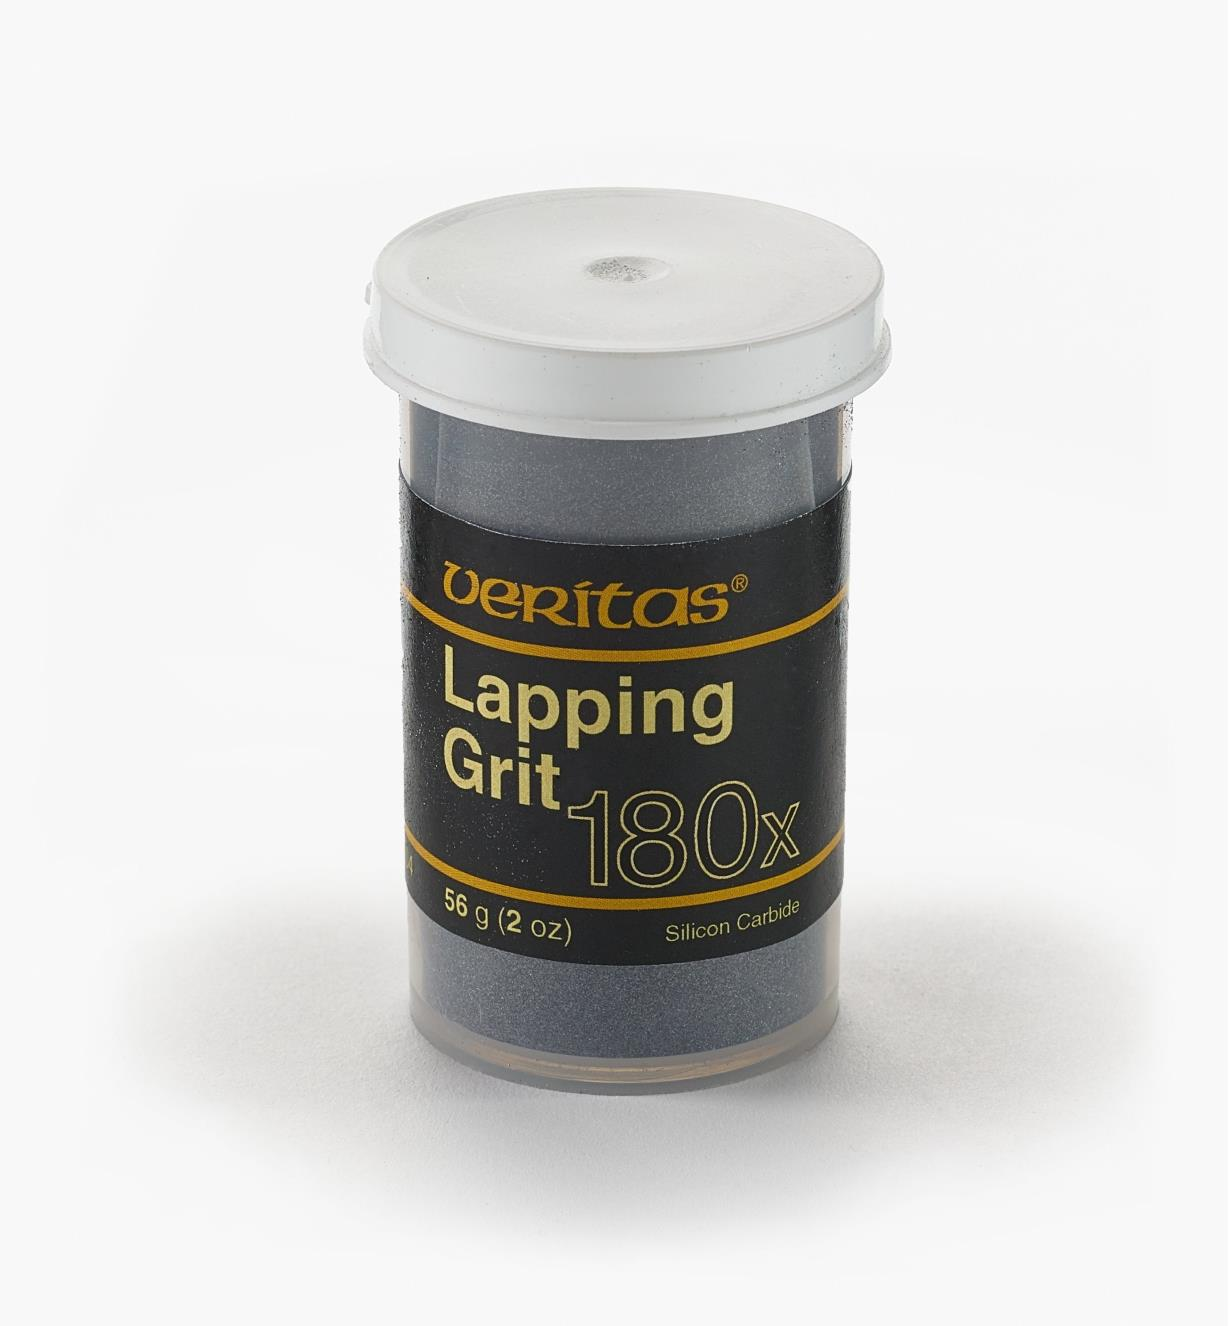 05M0104 - 180x Lapping Grit, 2 oz